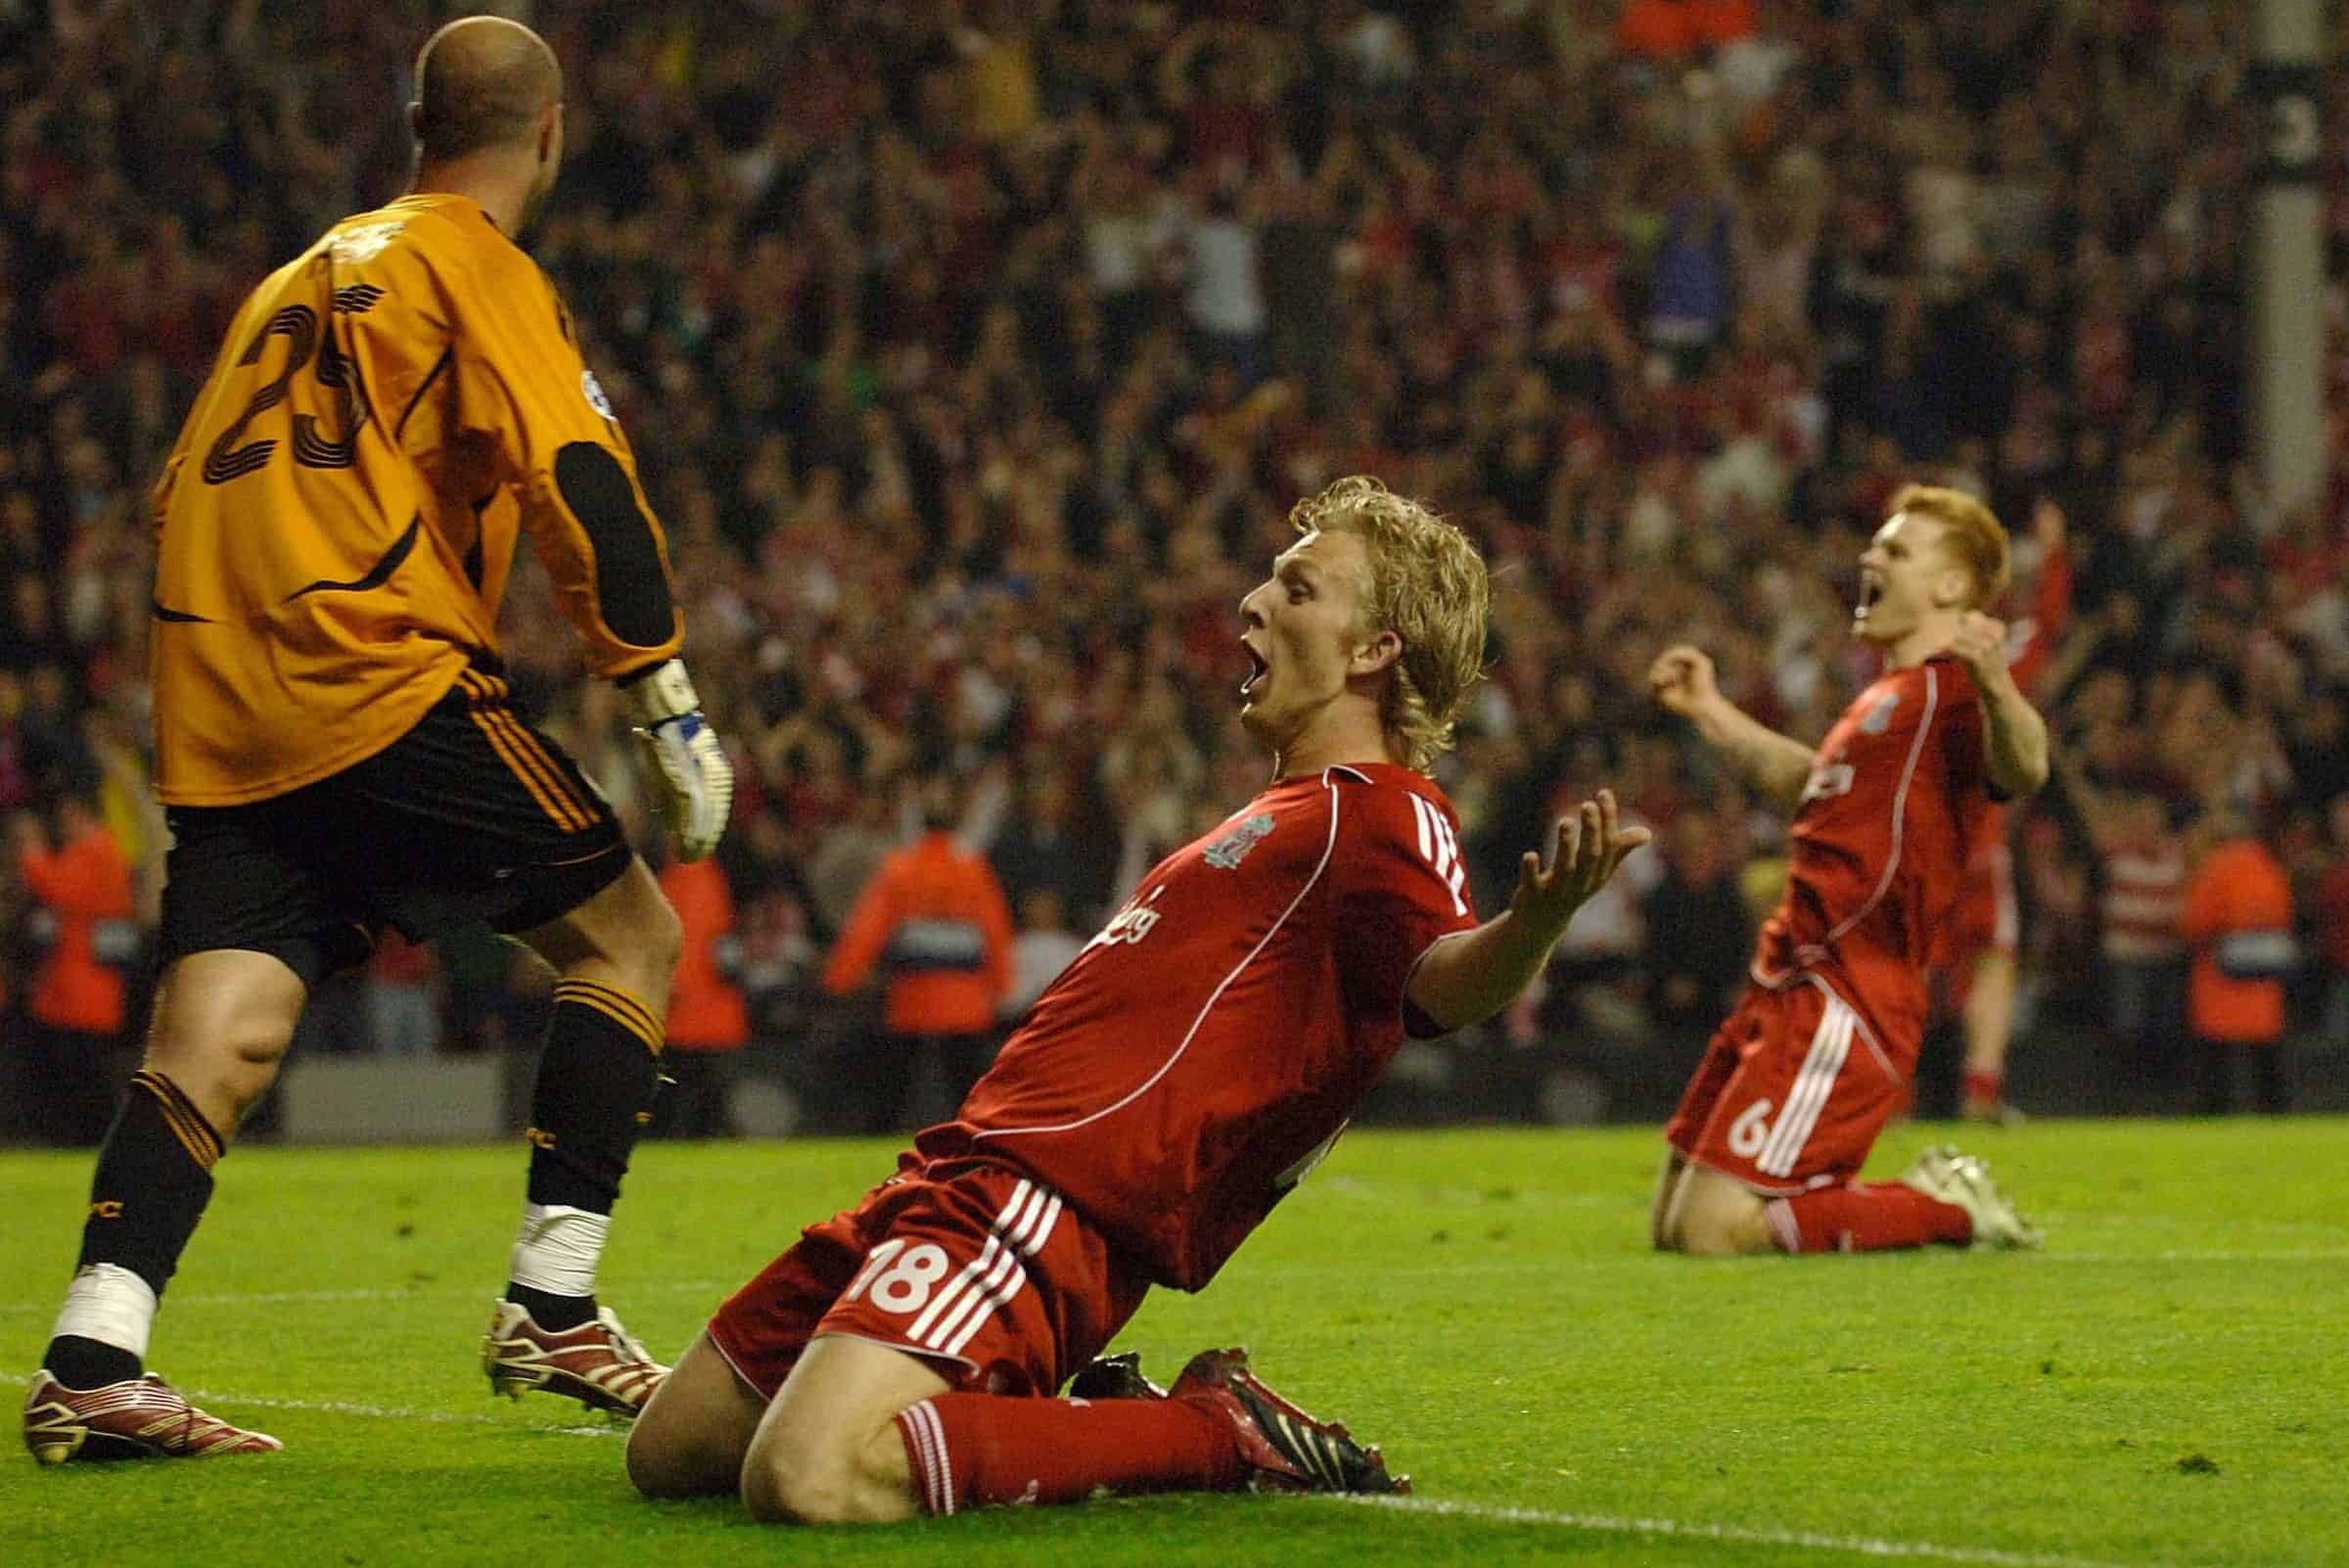 Liverpool's Dirk Kuyt (center), John Arne Riise and Jose Reina (left) celebrate after winning the match on penalties